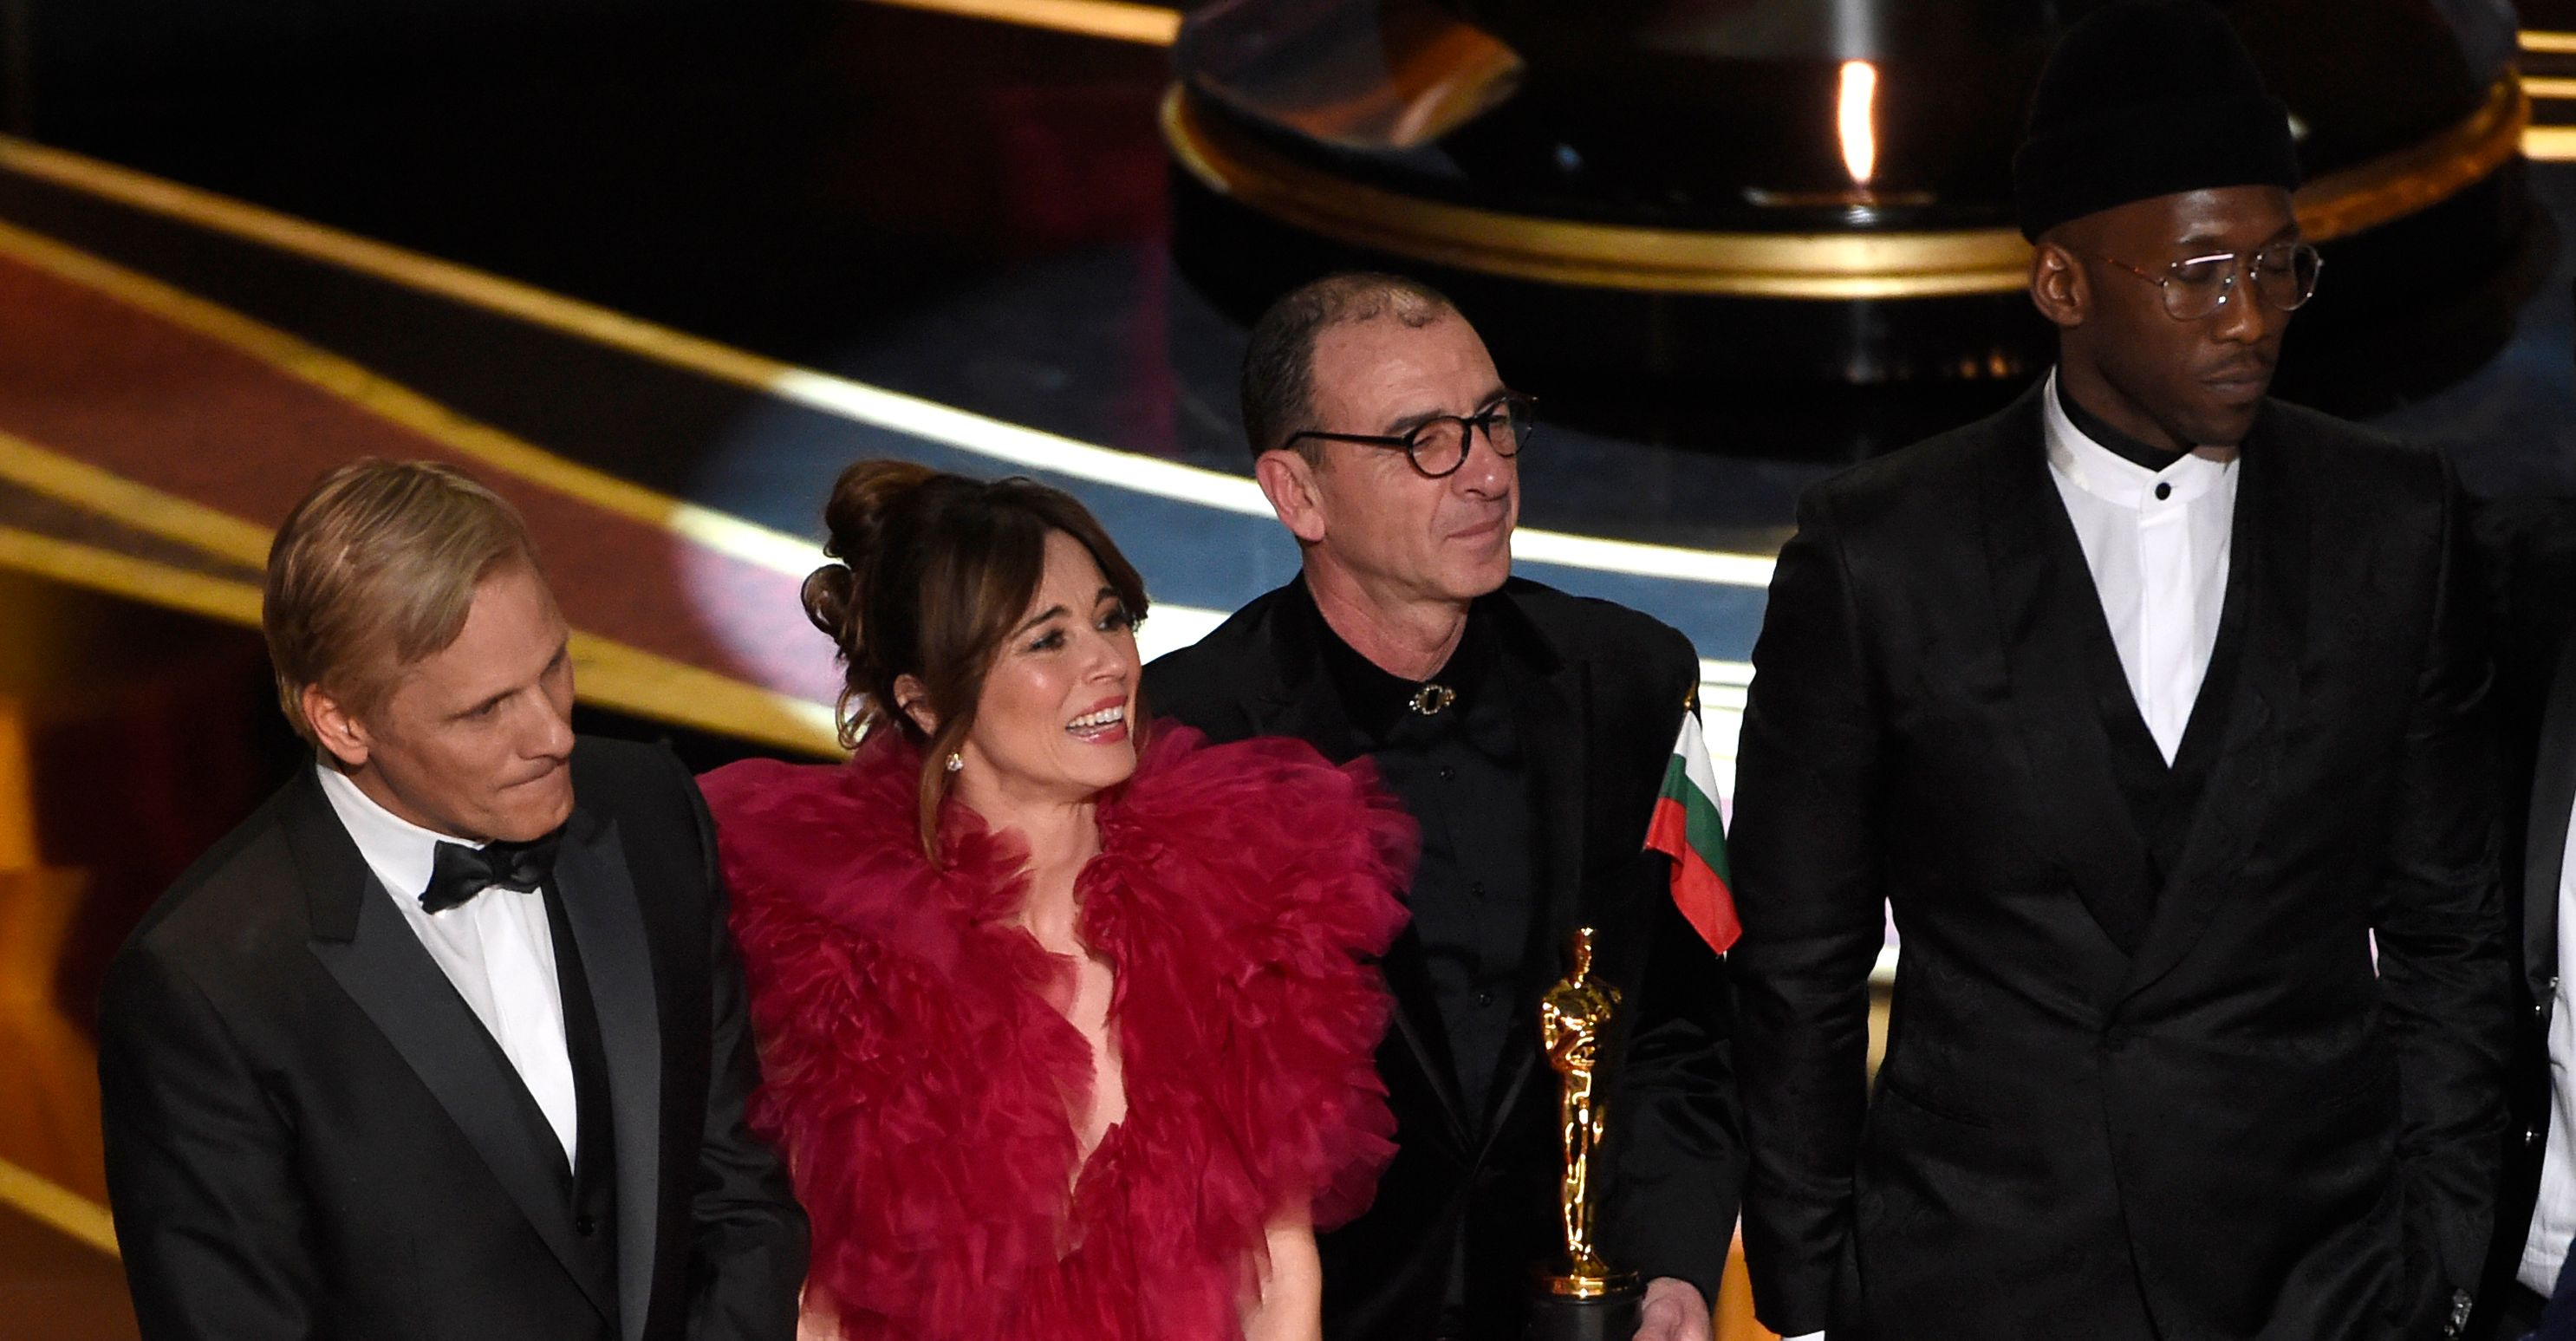 Viggo Mortensen, from left, Linda Cardellini, Dimiter Marinov and Mahershala Ali accept the award for best picture for Green Book at the Oscars at the Dolby Theatre in Los Angeles.